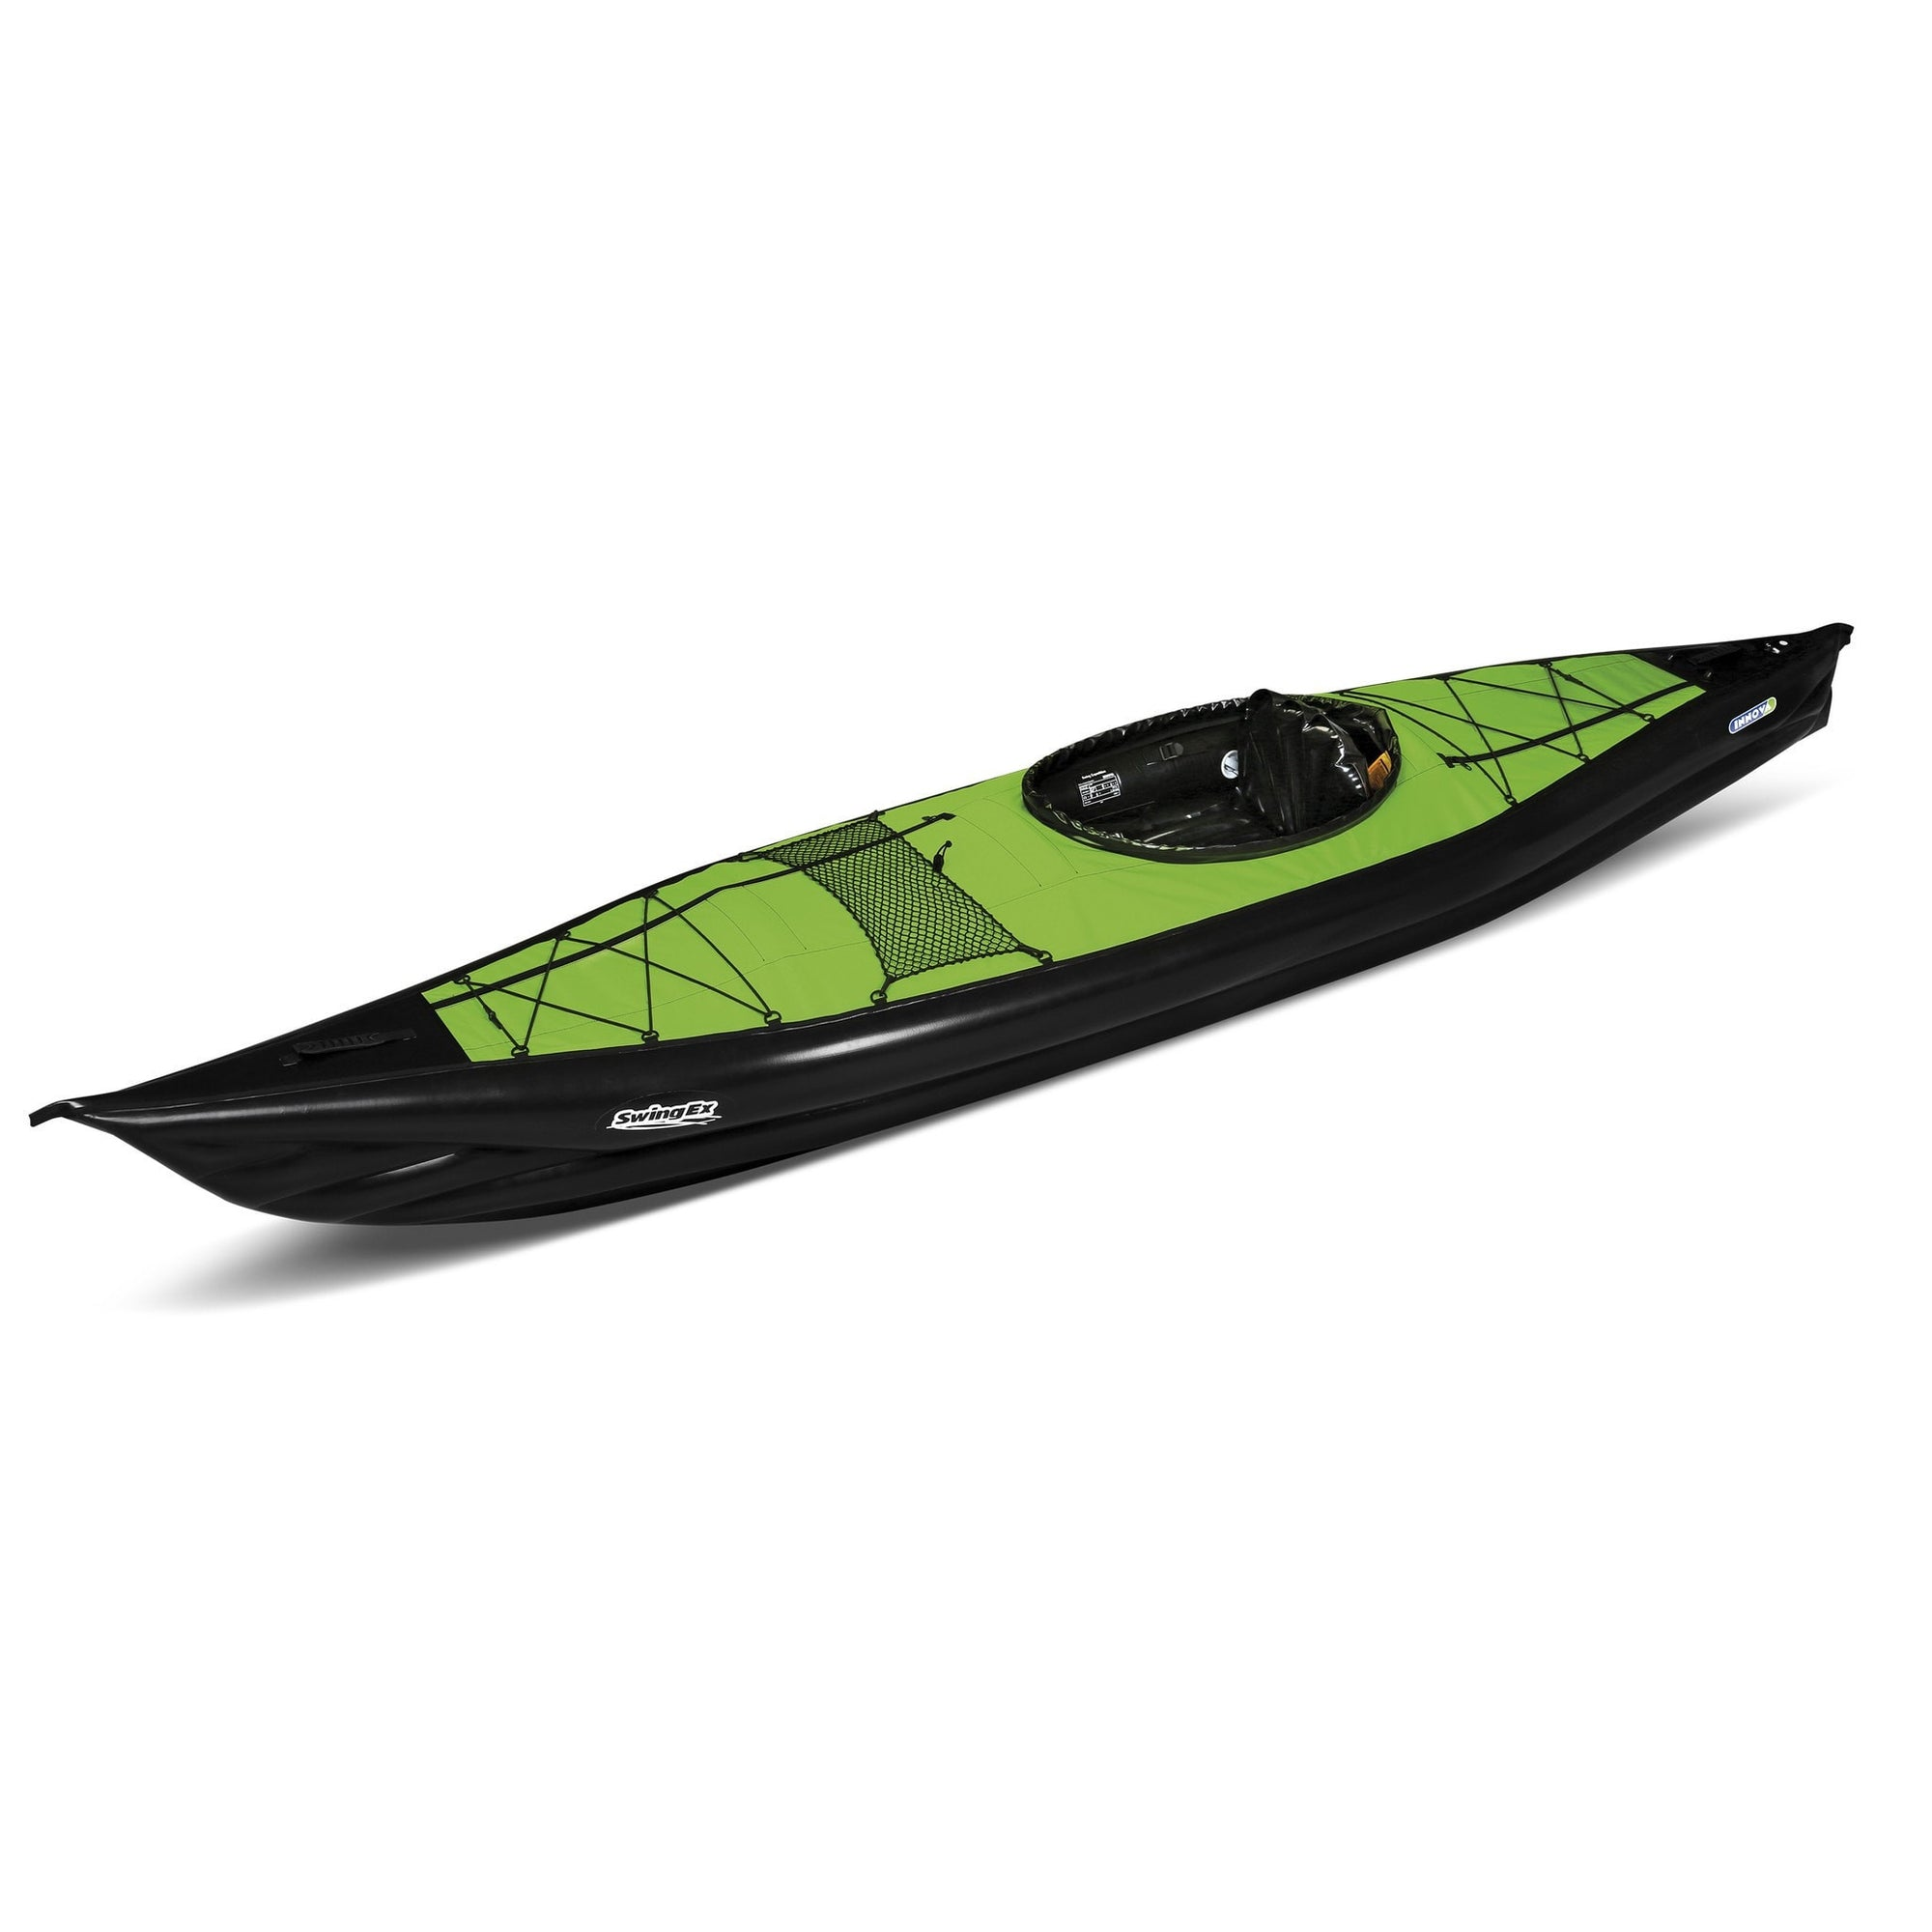 Innova Kayaks Swing EX LN Inflatable Touring Kayak - Kayak Creek